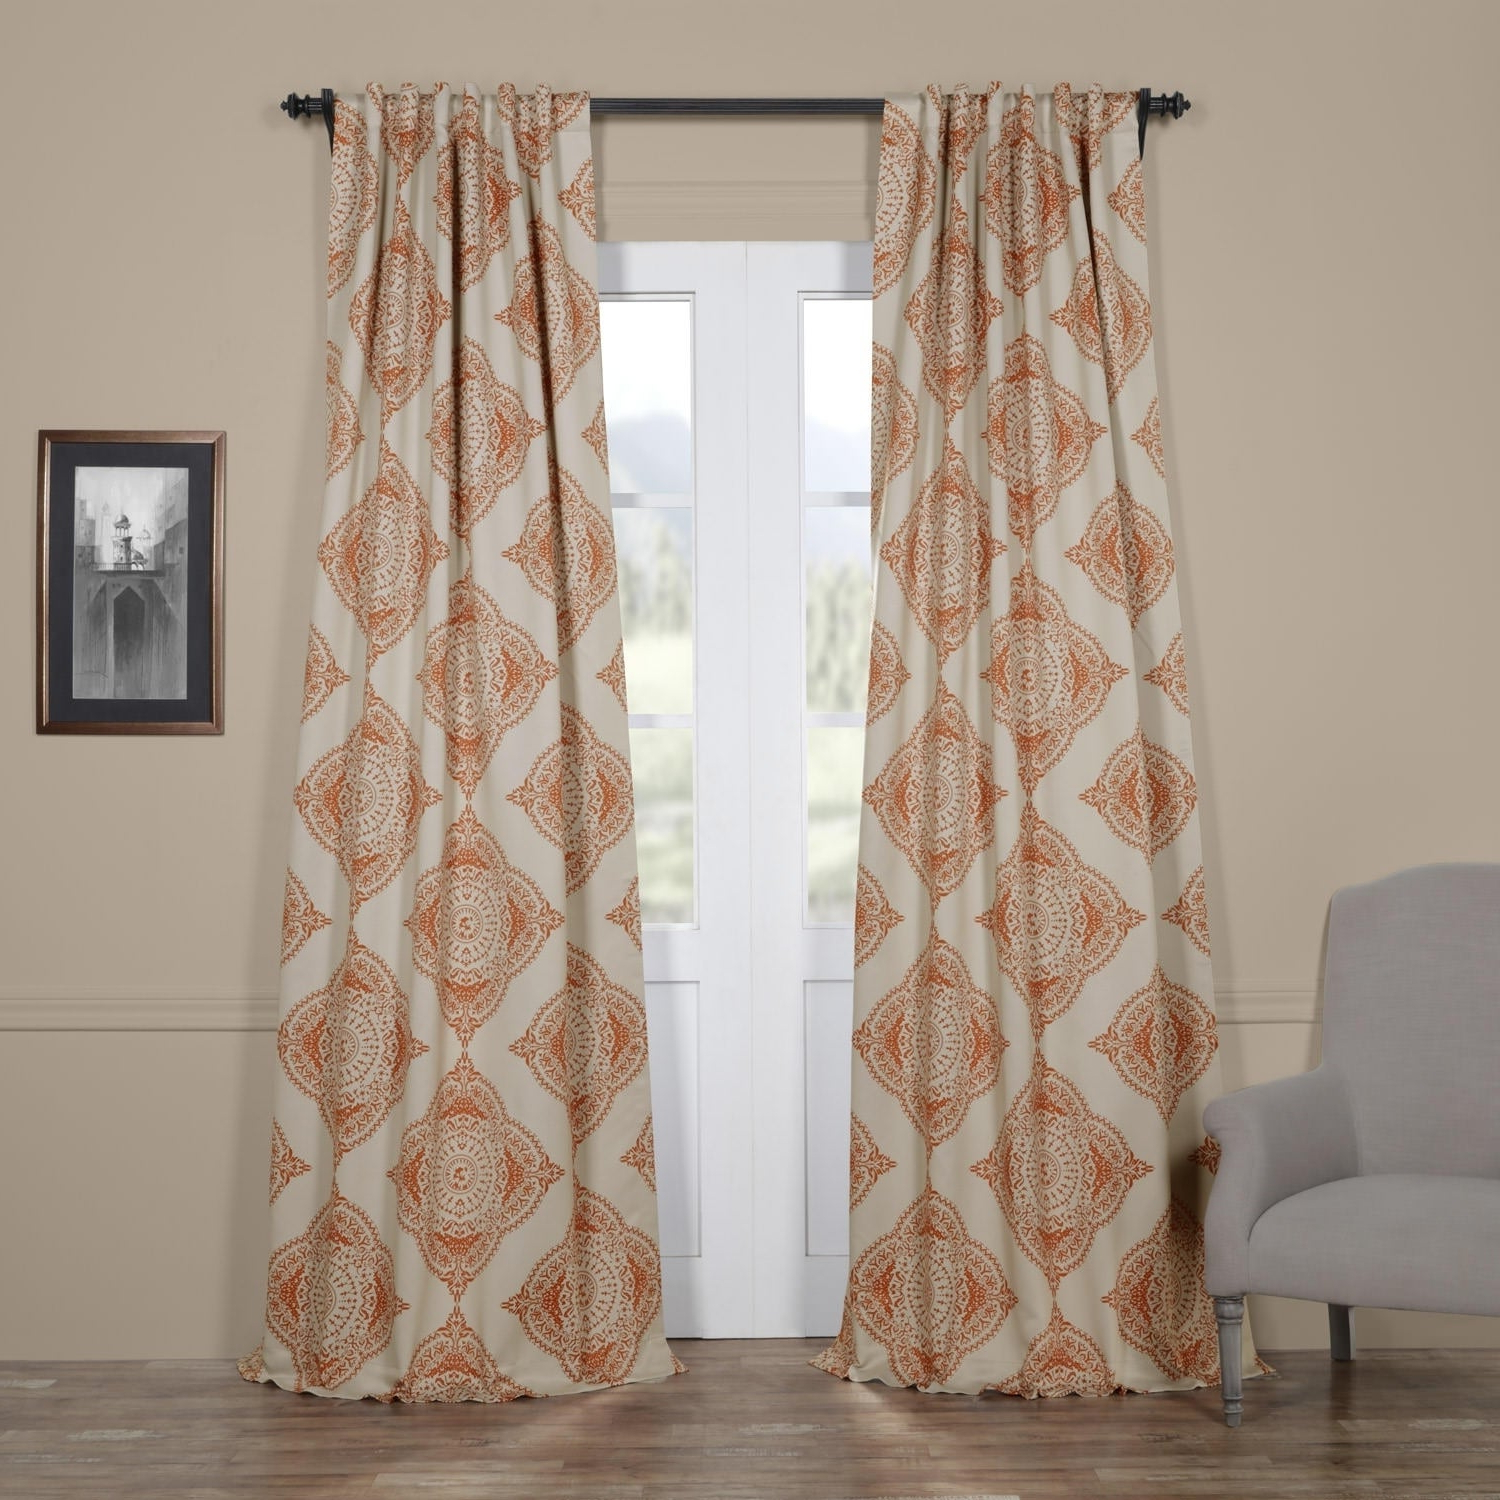 Most Recently Released Moroccan Style Thermal Insulated Blackout Curtain Panel Pair In Thermal Insulated Blackout Curtain Panel Pairs (View 7 of 20)